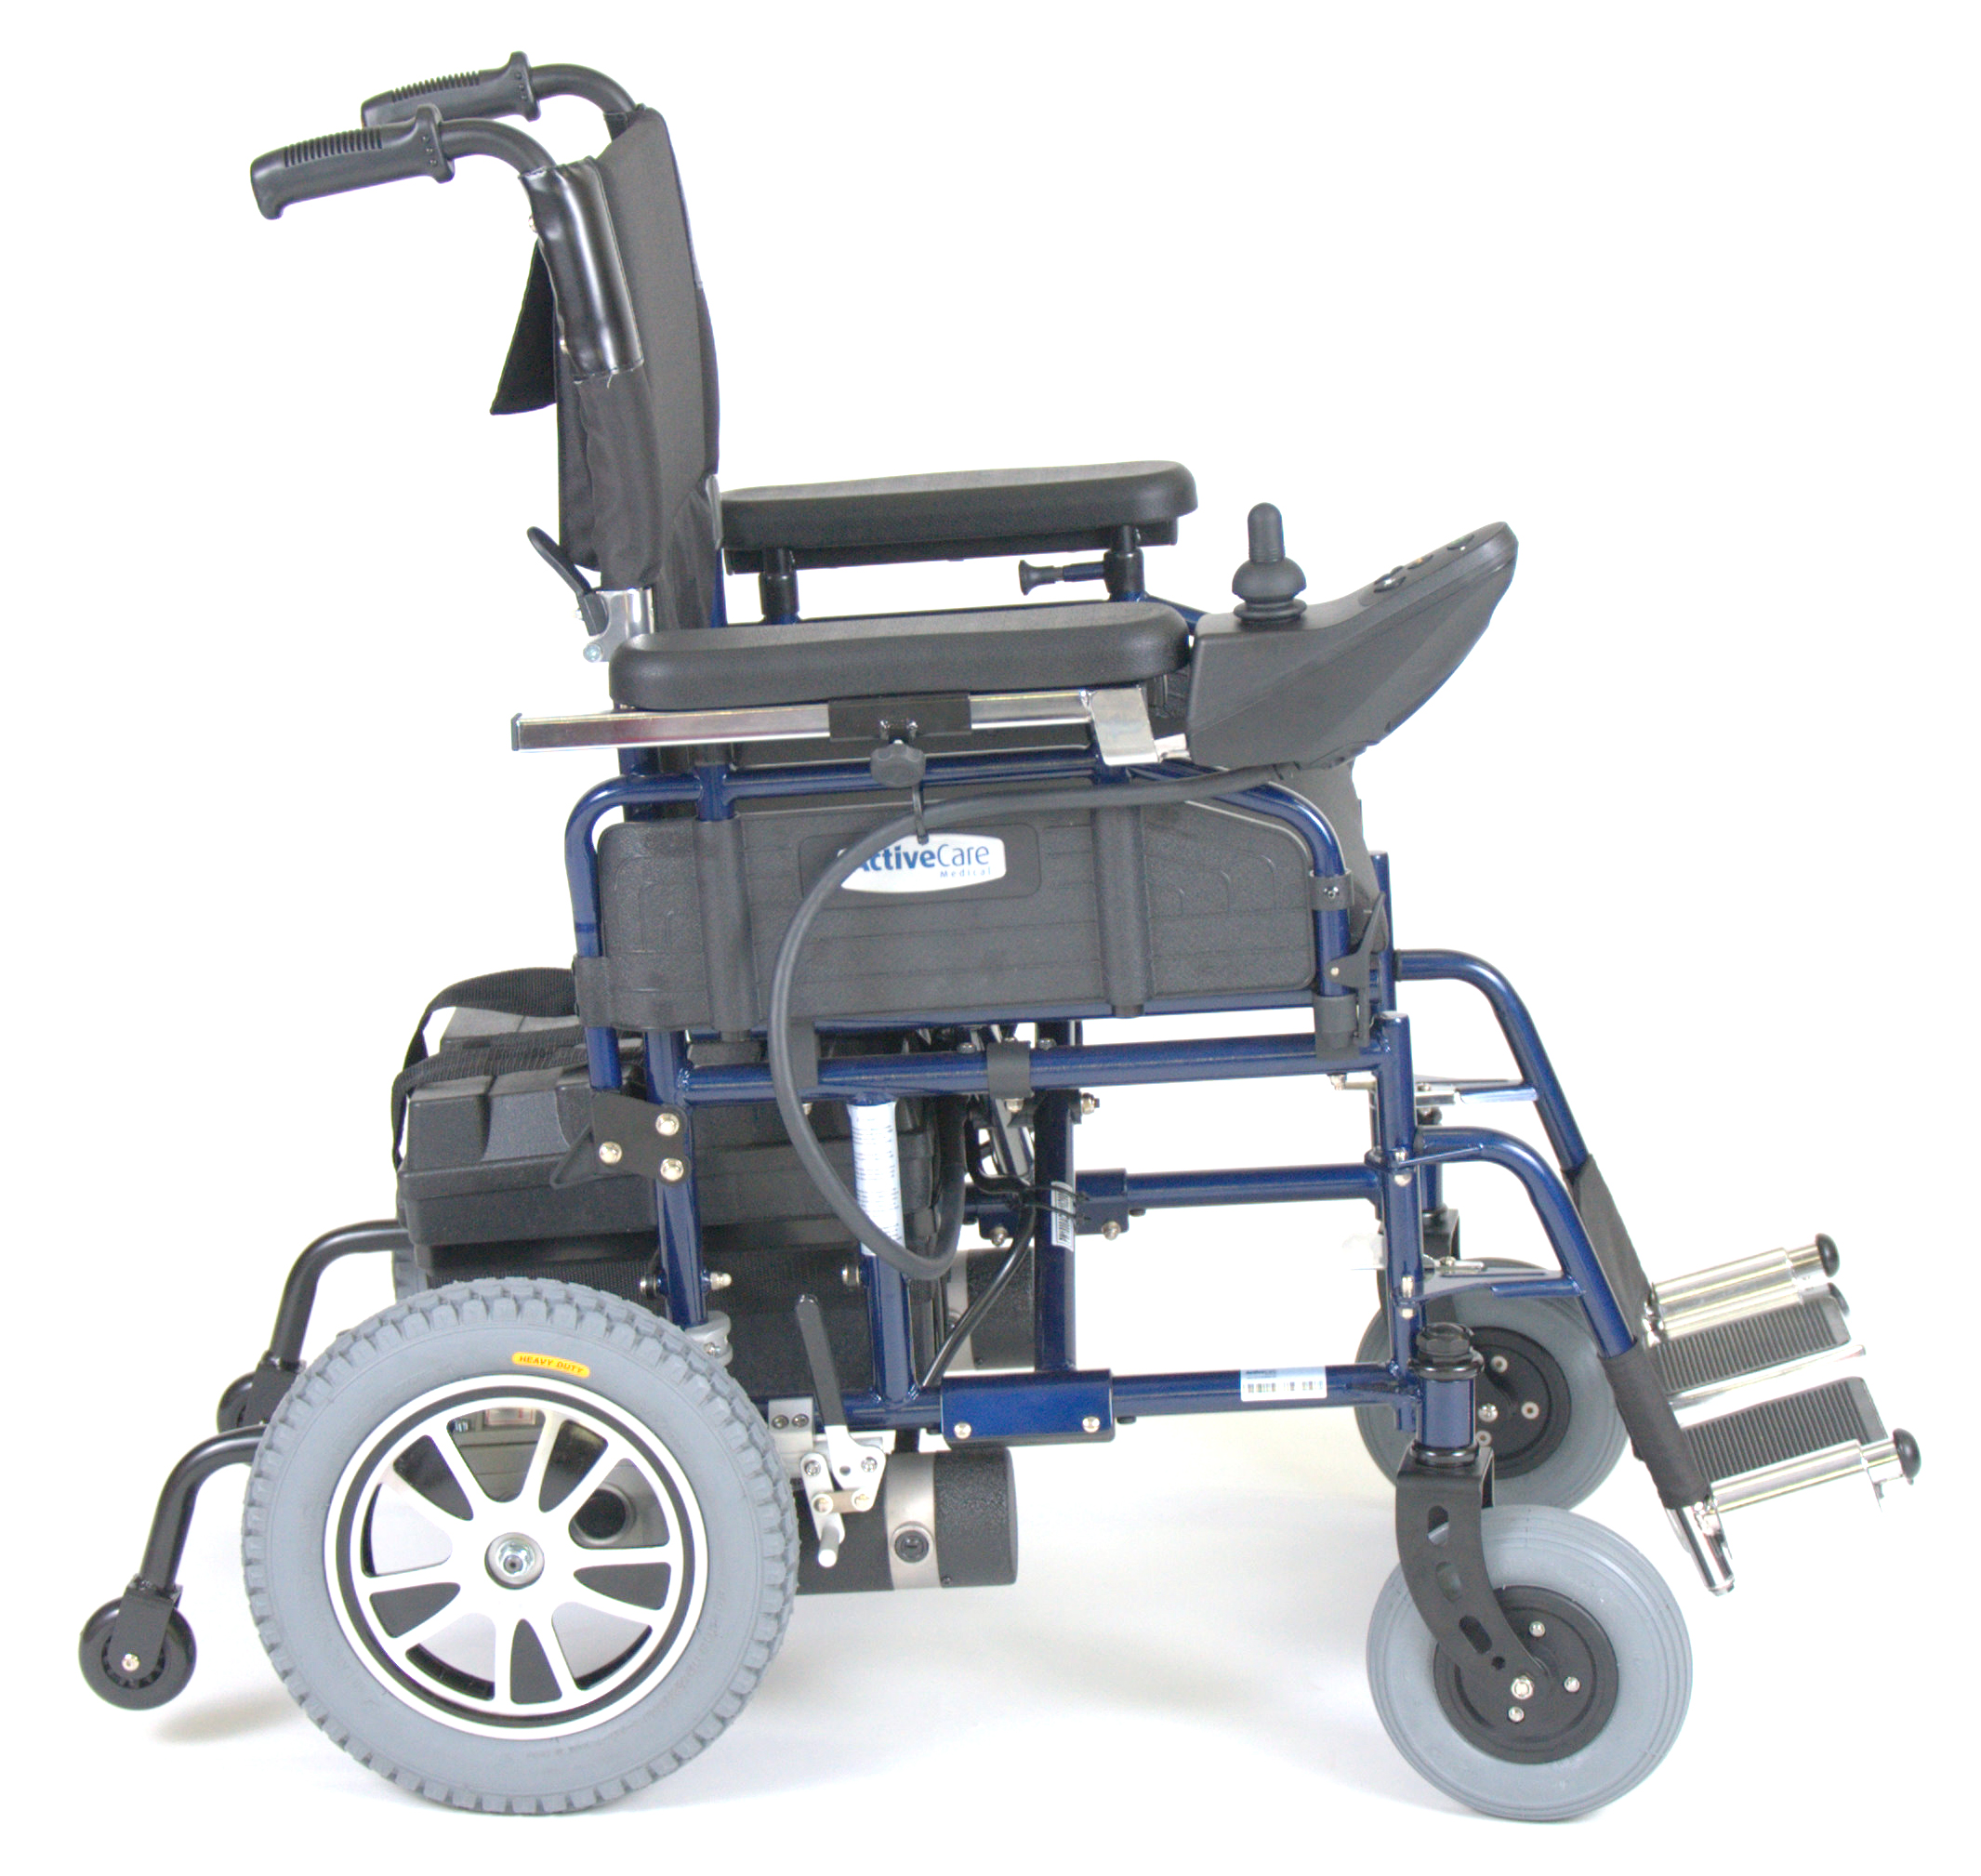 wildcat-folding-power-wheelchair-wildcat18b-drive-medical-4.jpg